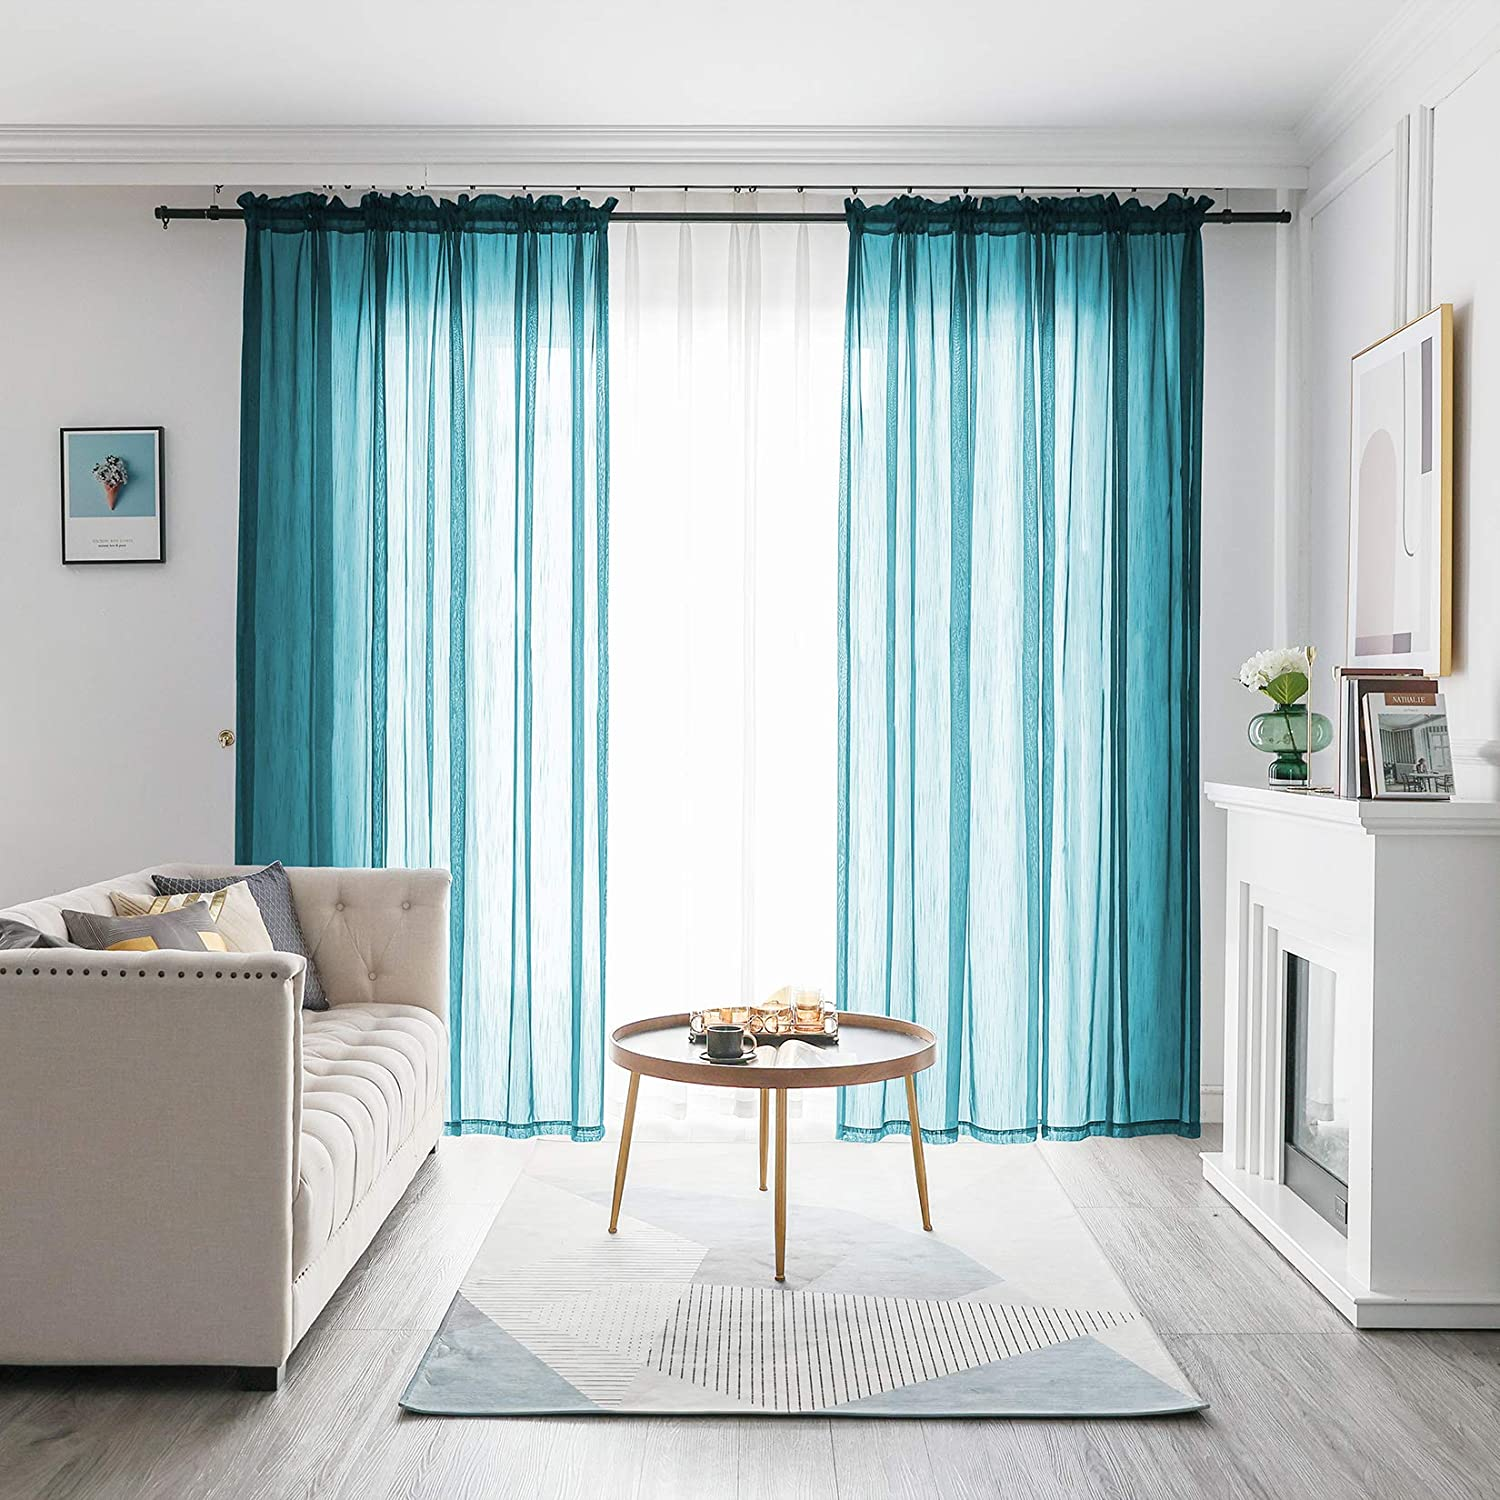 FY FIBER HOUSE Linen Look Sheer Curtains Window Treatments Voile Panels 84 Inch Length for Sliding Glass Doors Set of 2 Panels 52Wx84L Inch Teal 1 Pair